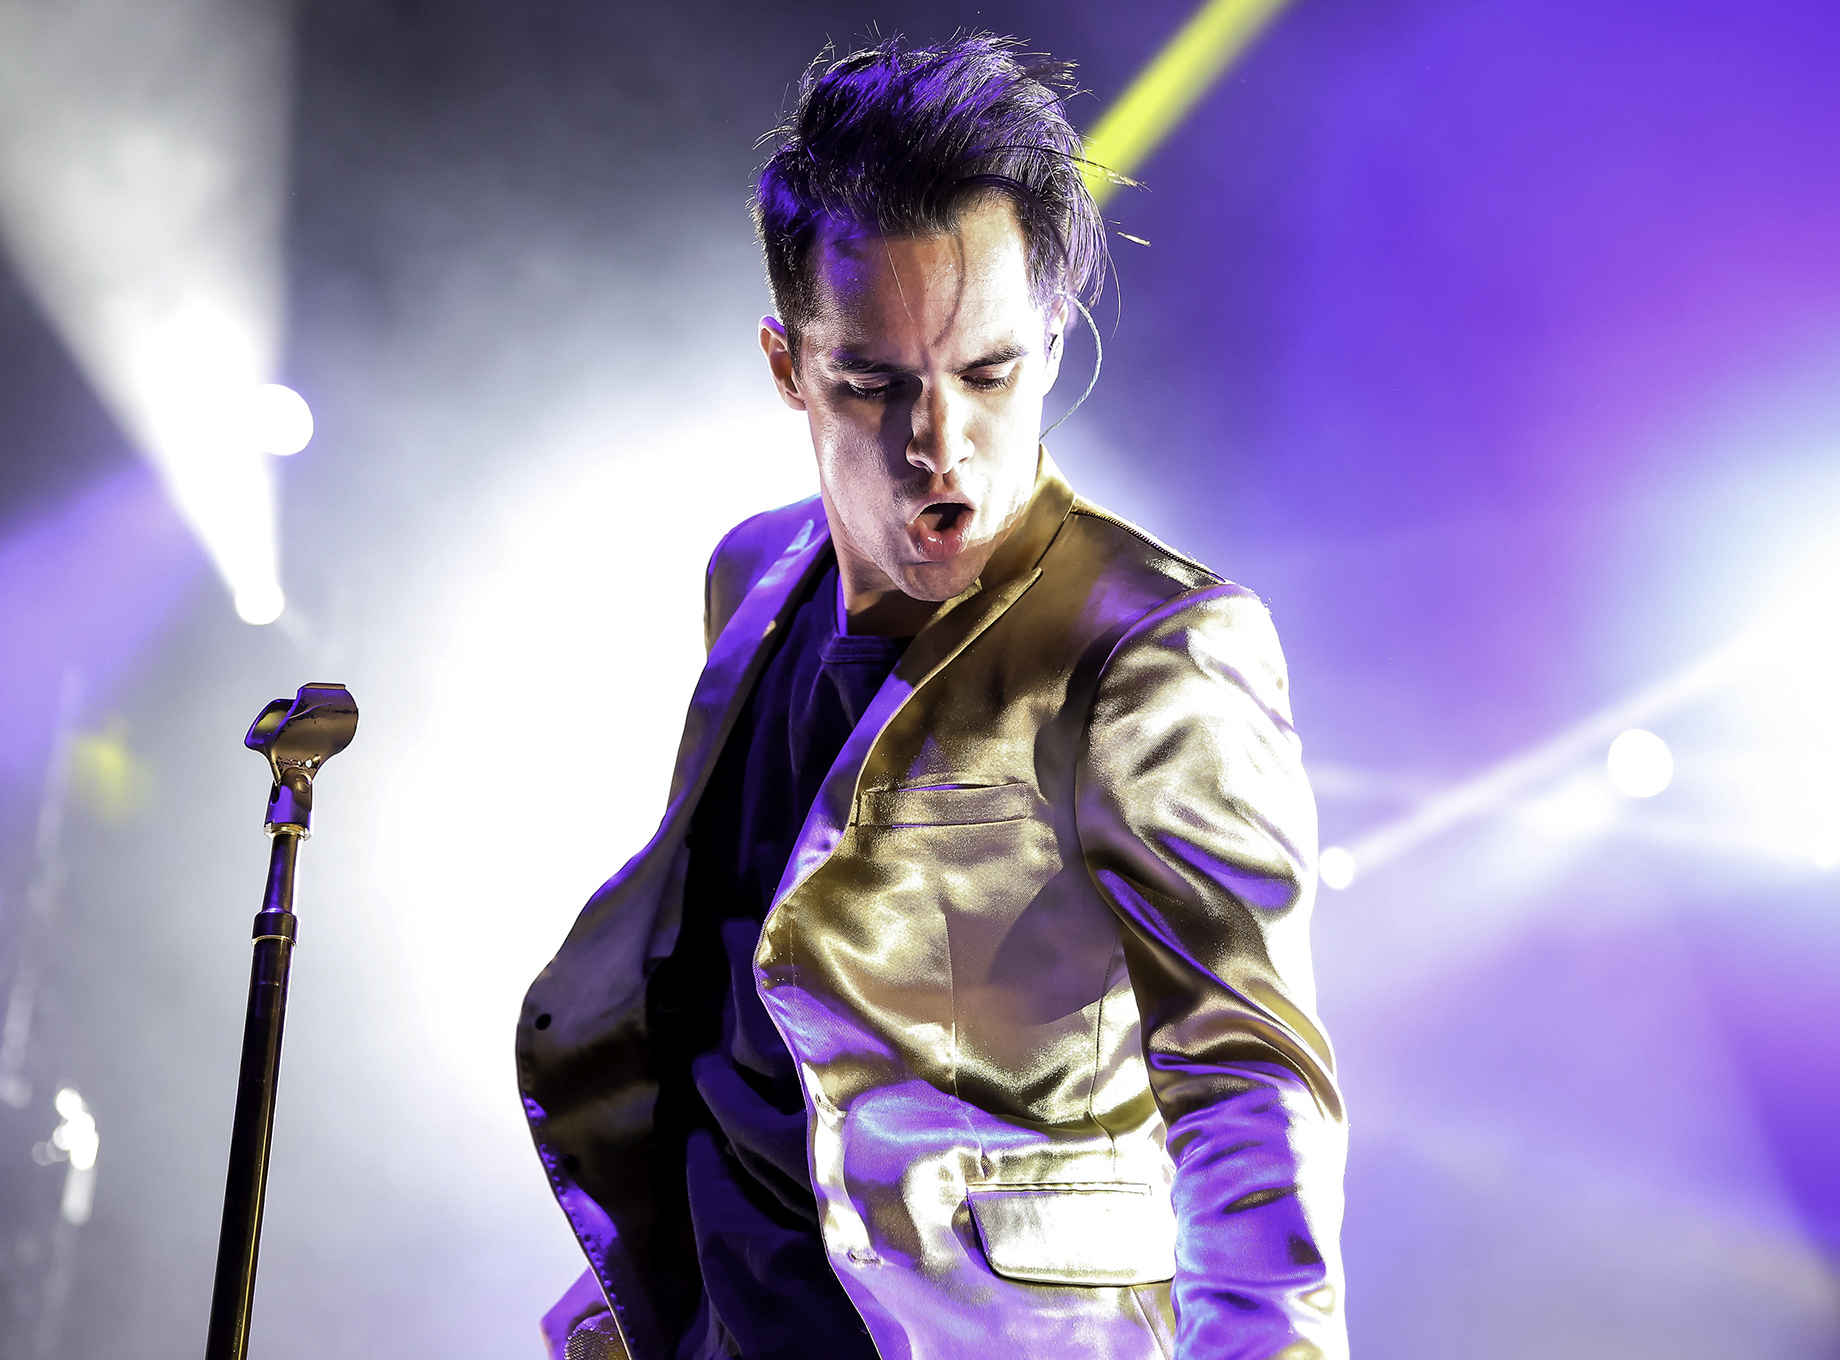 Brendon Urie - Panic at the Disco 2